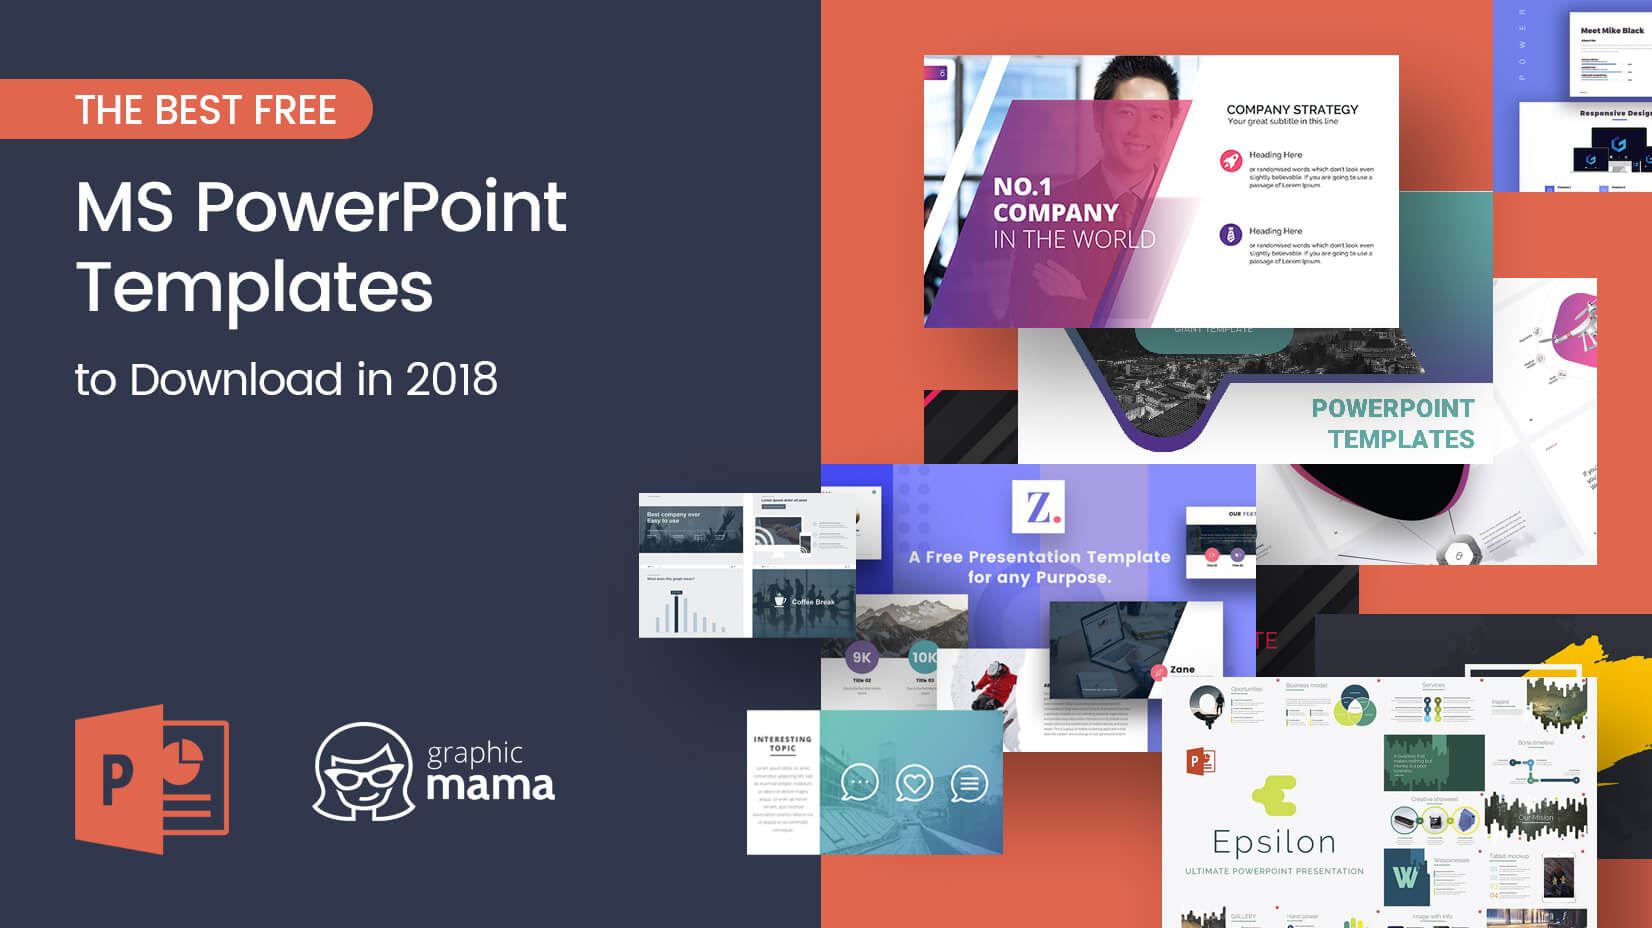 The best free powerpoint templates to download in 2018 graphicmama the best free powerpoint templates to download in 2018 accmission Image collections